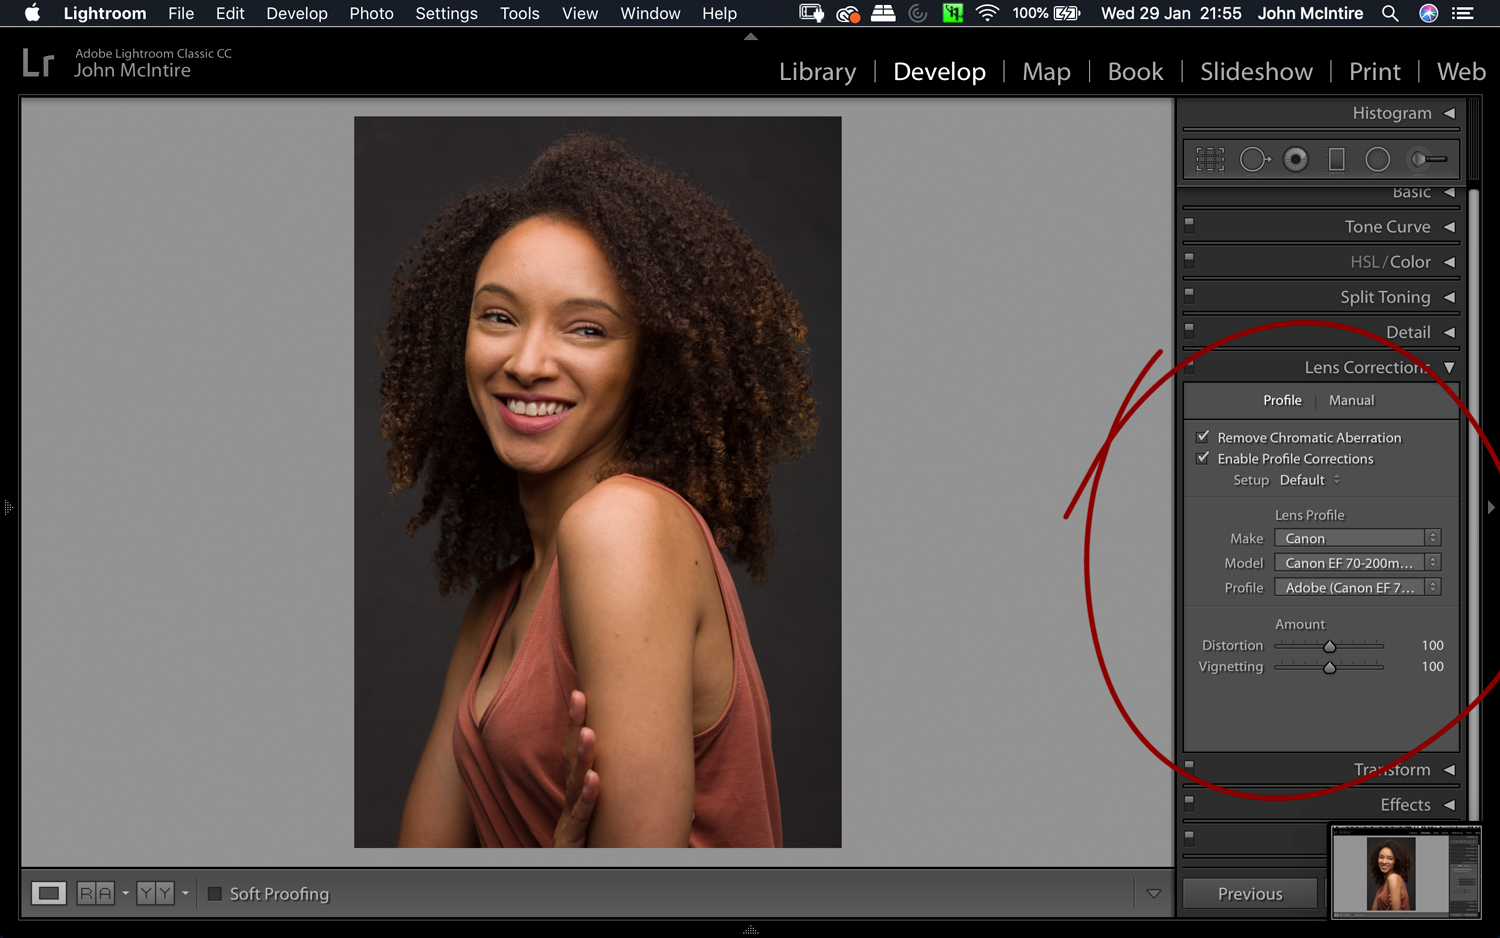 Things to do to every photo in Lightroom - Lens Corrections